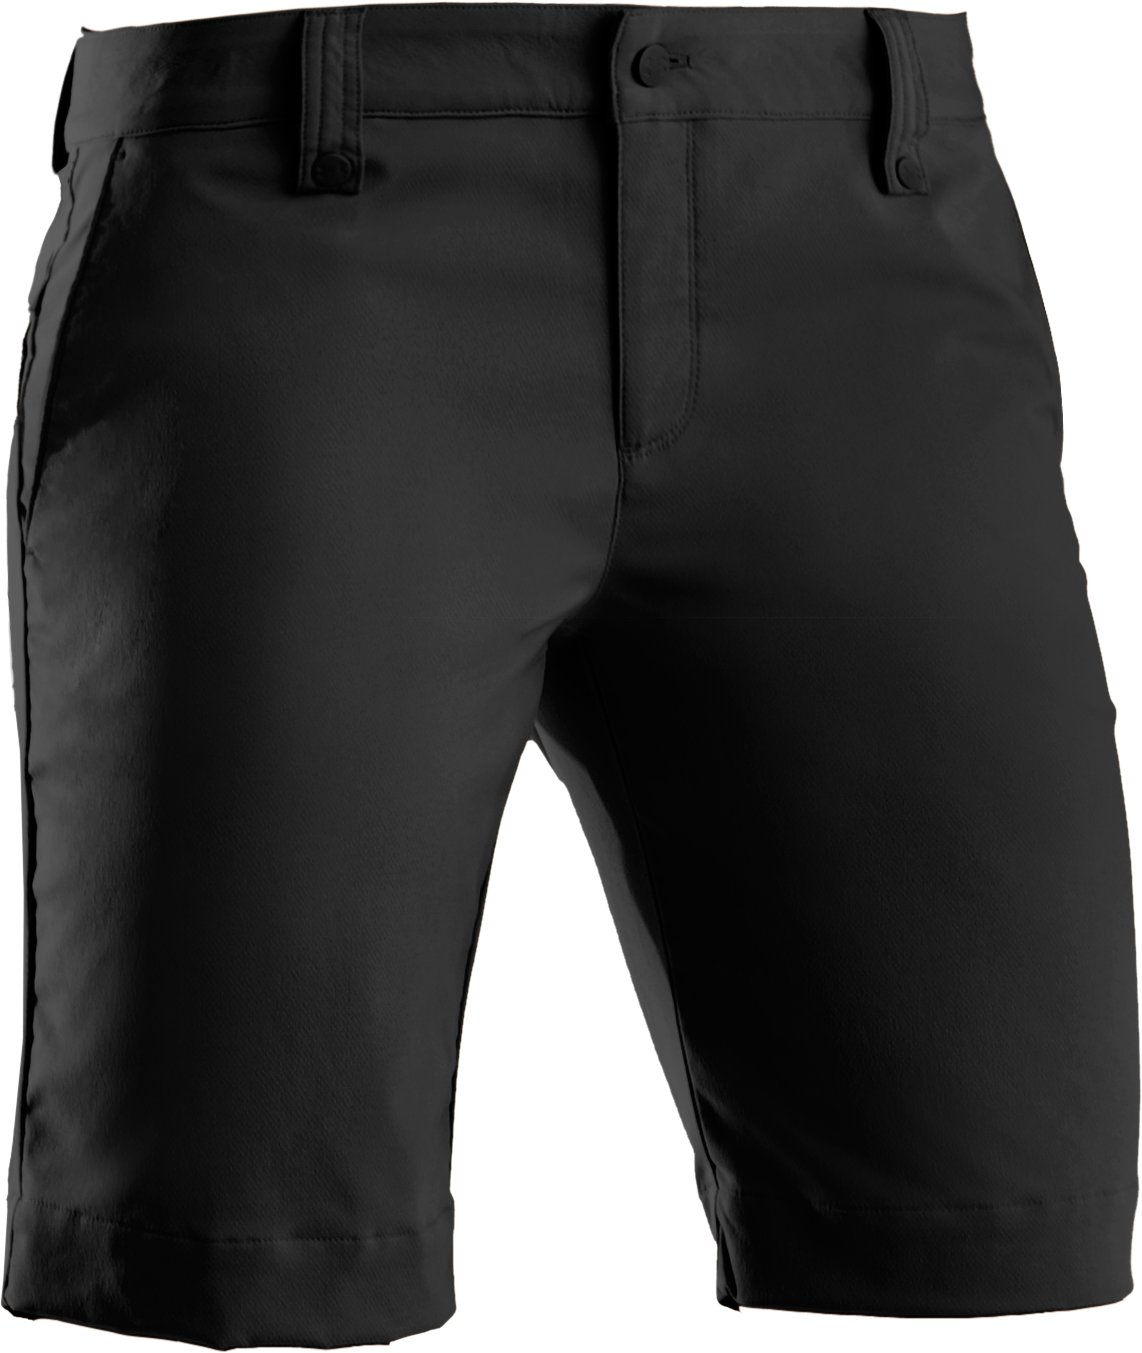 "Women's UA Core Solid 10"" Bermuda Short, Black"